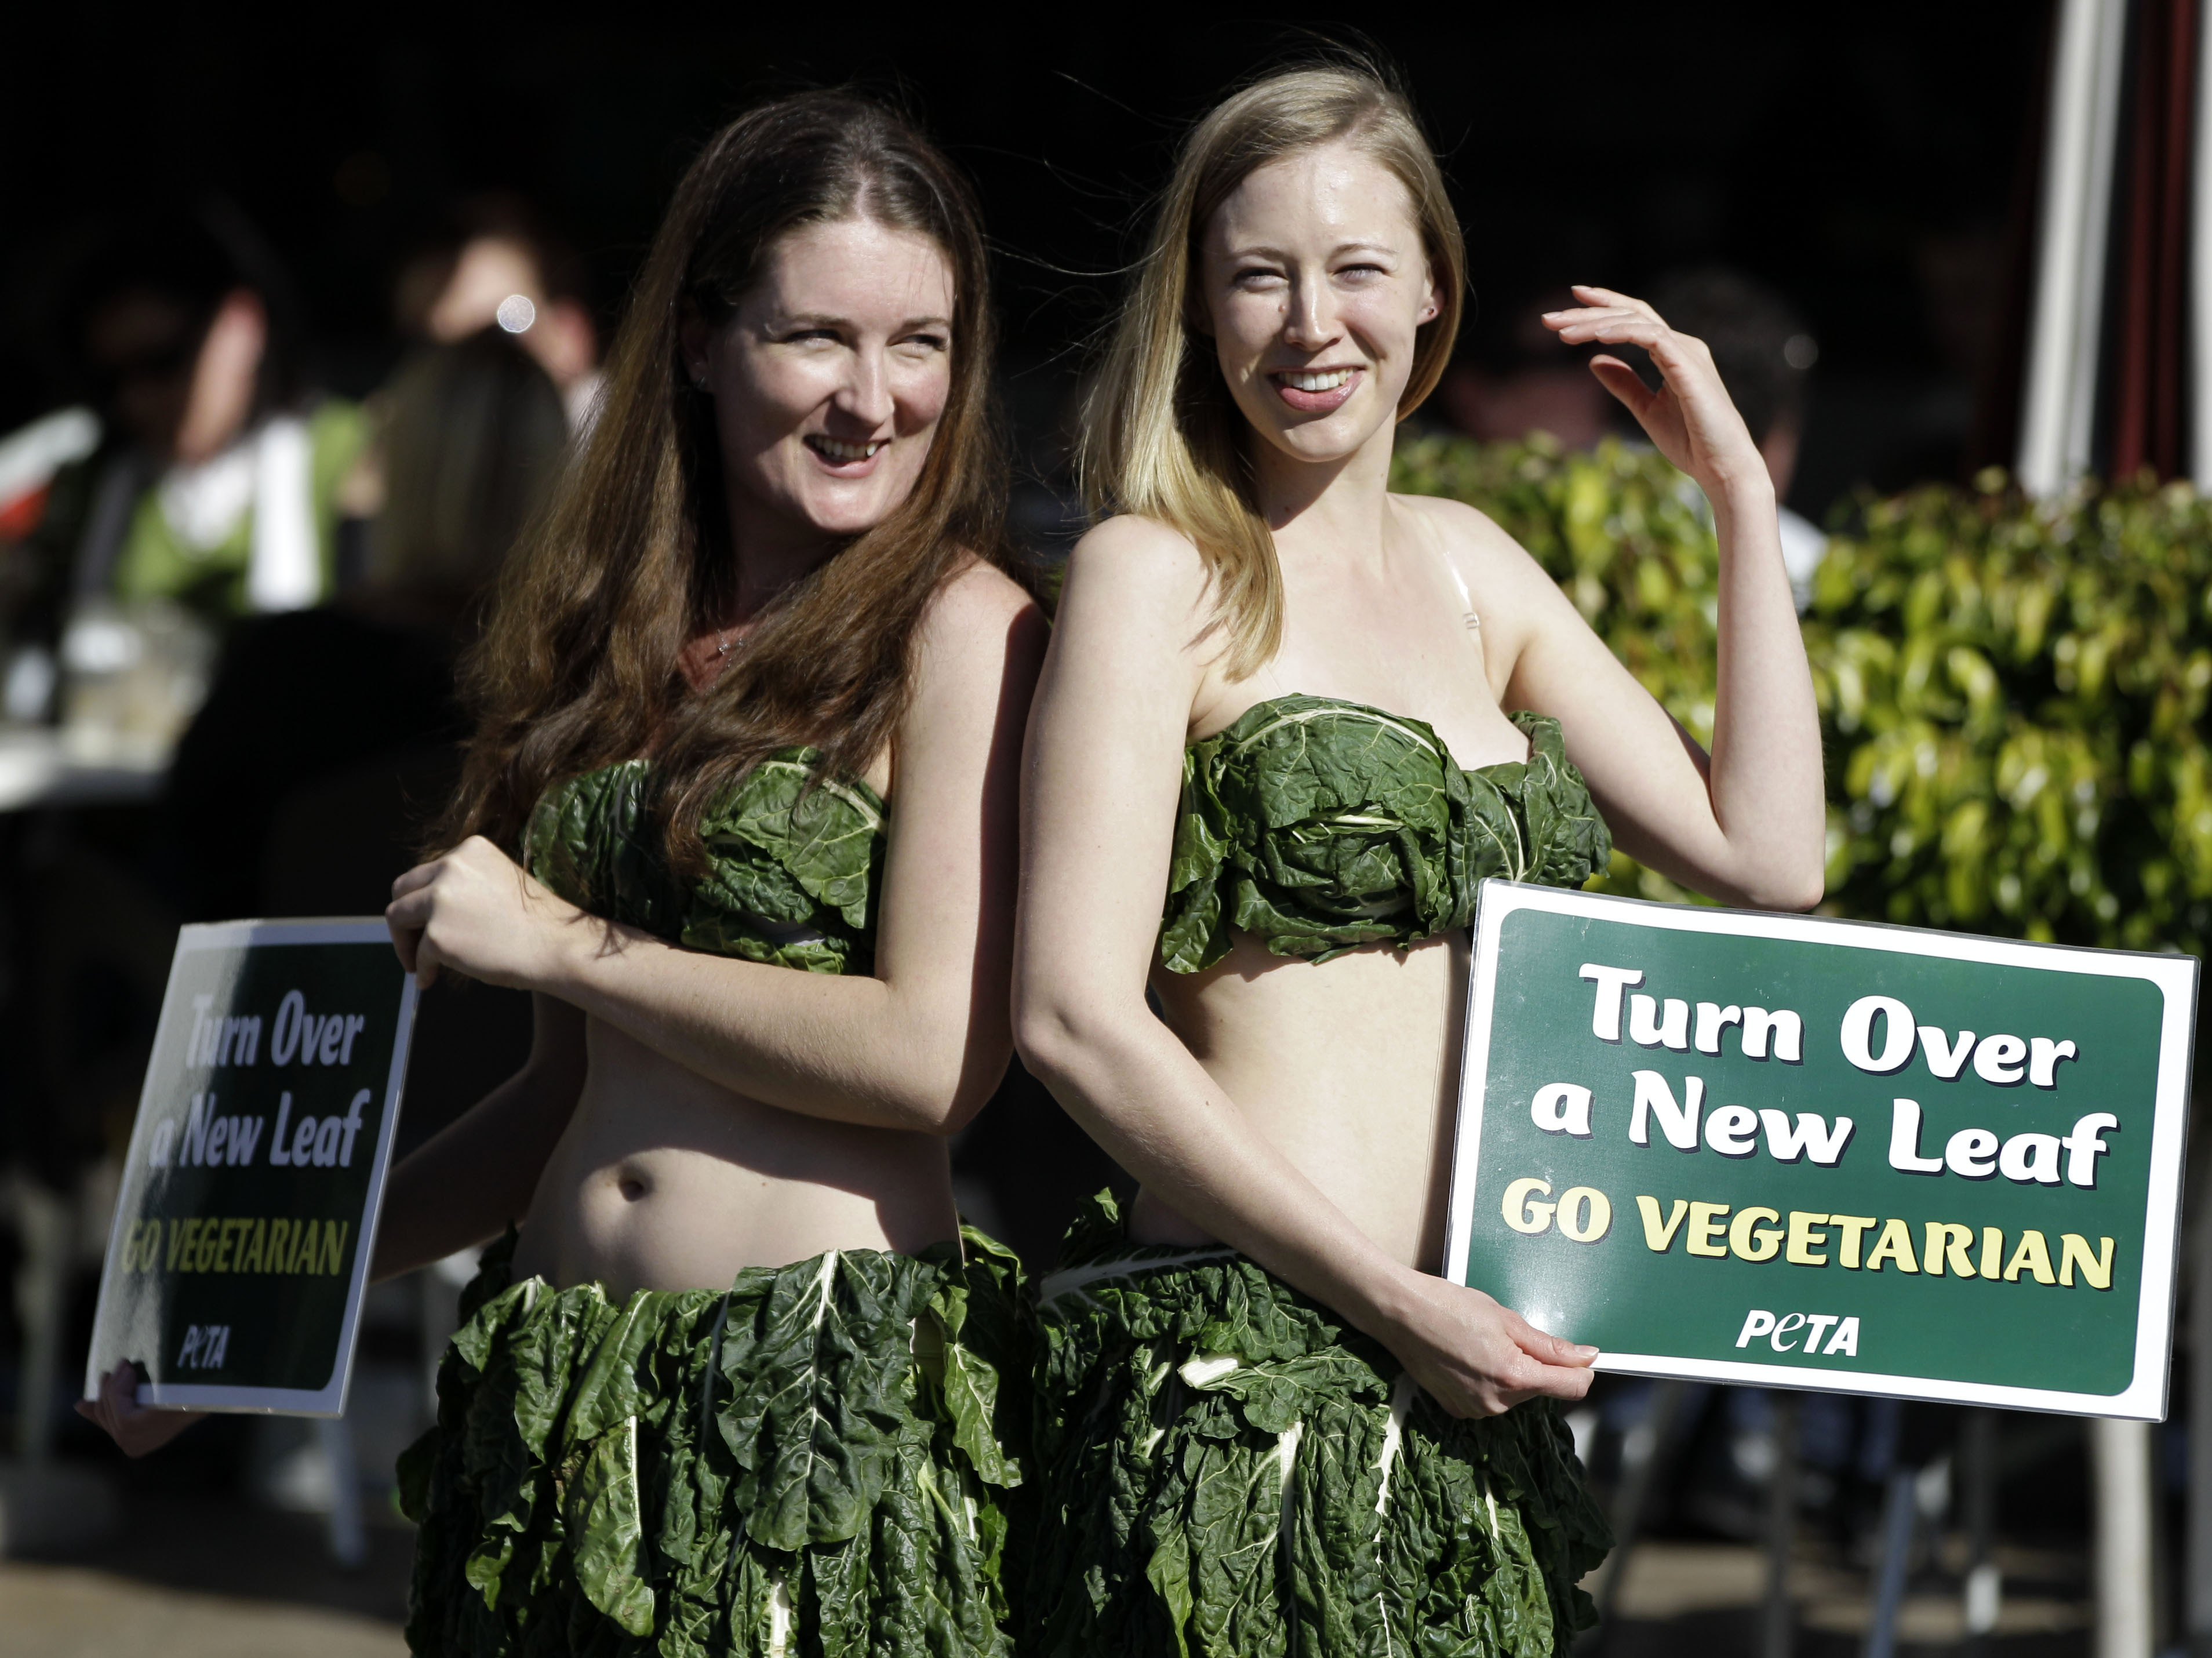 Can Going Vegetarian Help You Live Longer? Maybe